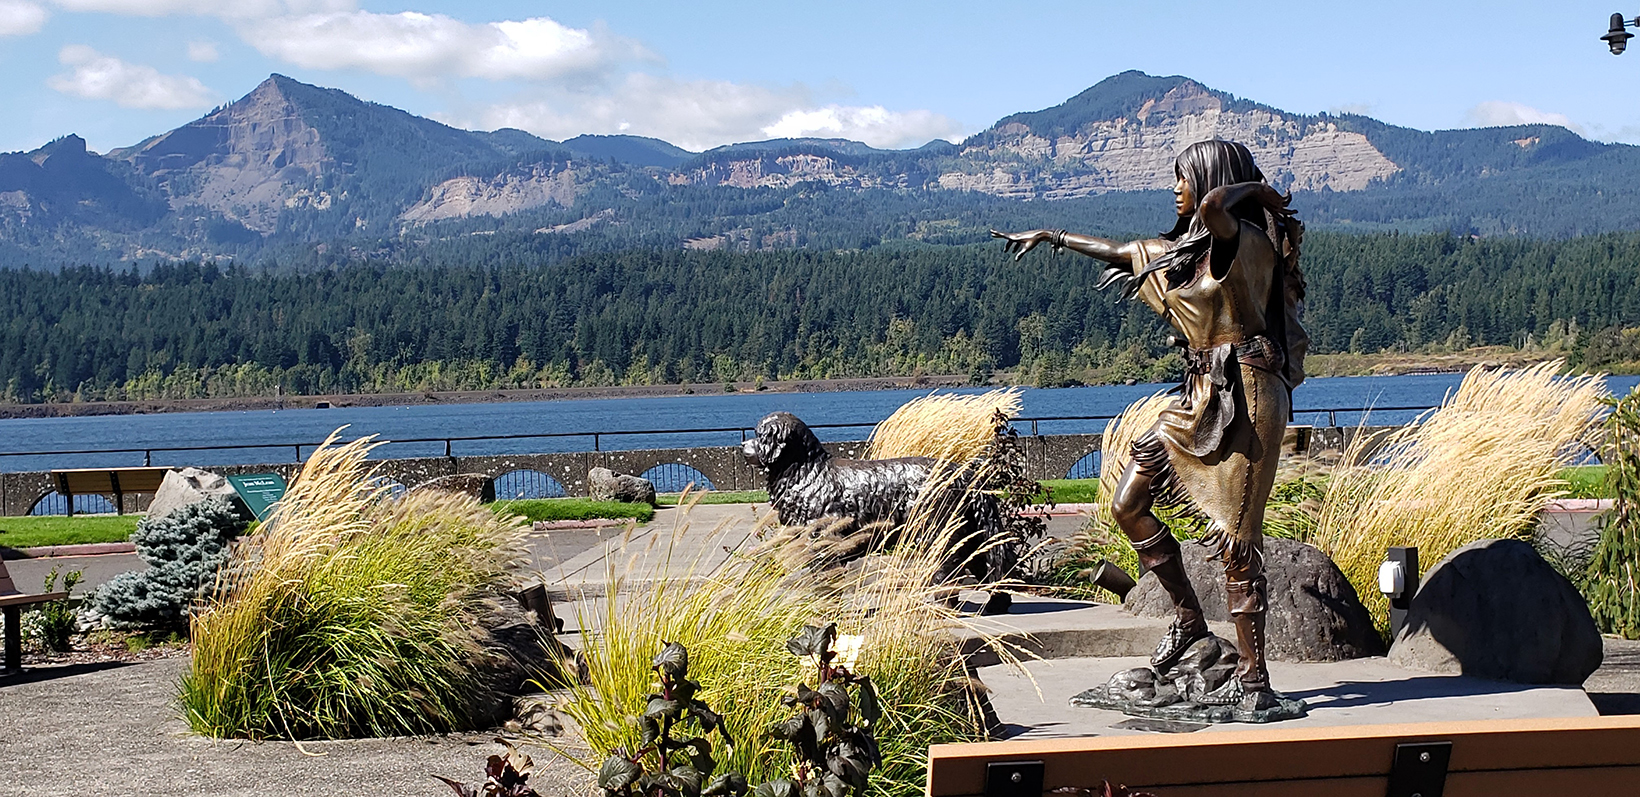 A statue of Sacagawea and her dog along the Cascade Locks waterfront